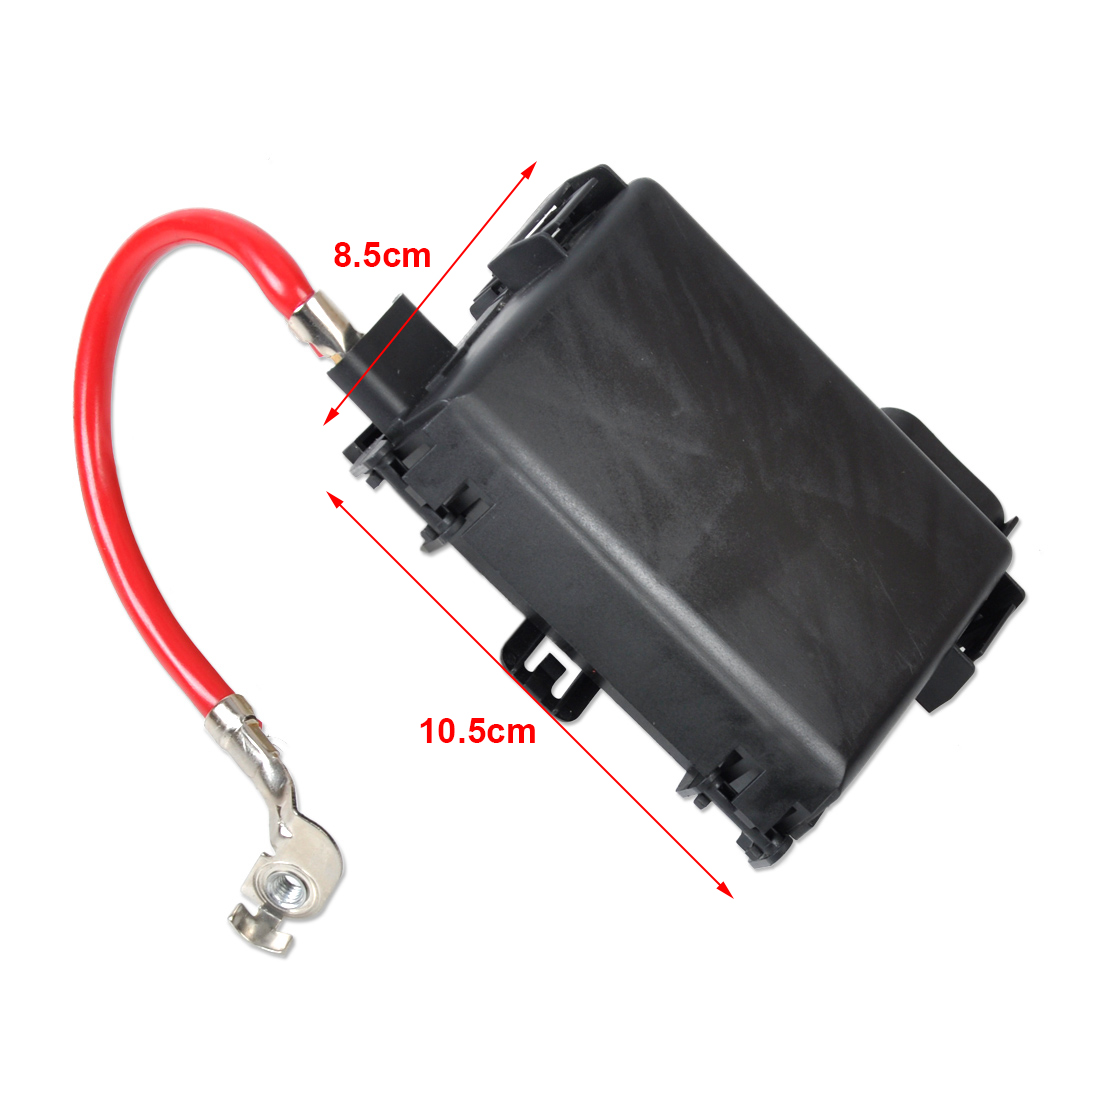 hight resolution of citall 1j0937550a fuse box battery terminal for vw beetle golf golf city jetta audi a3 s3